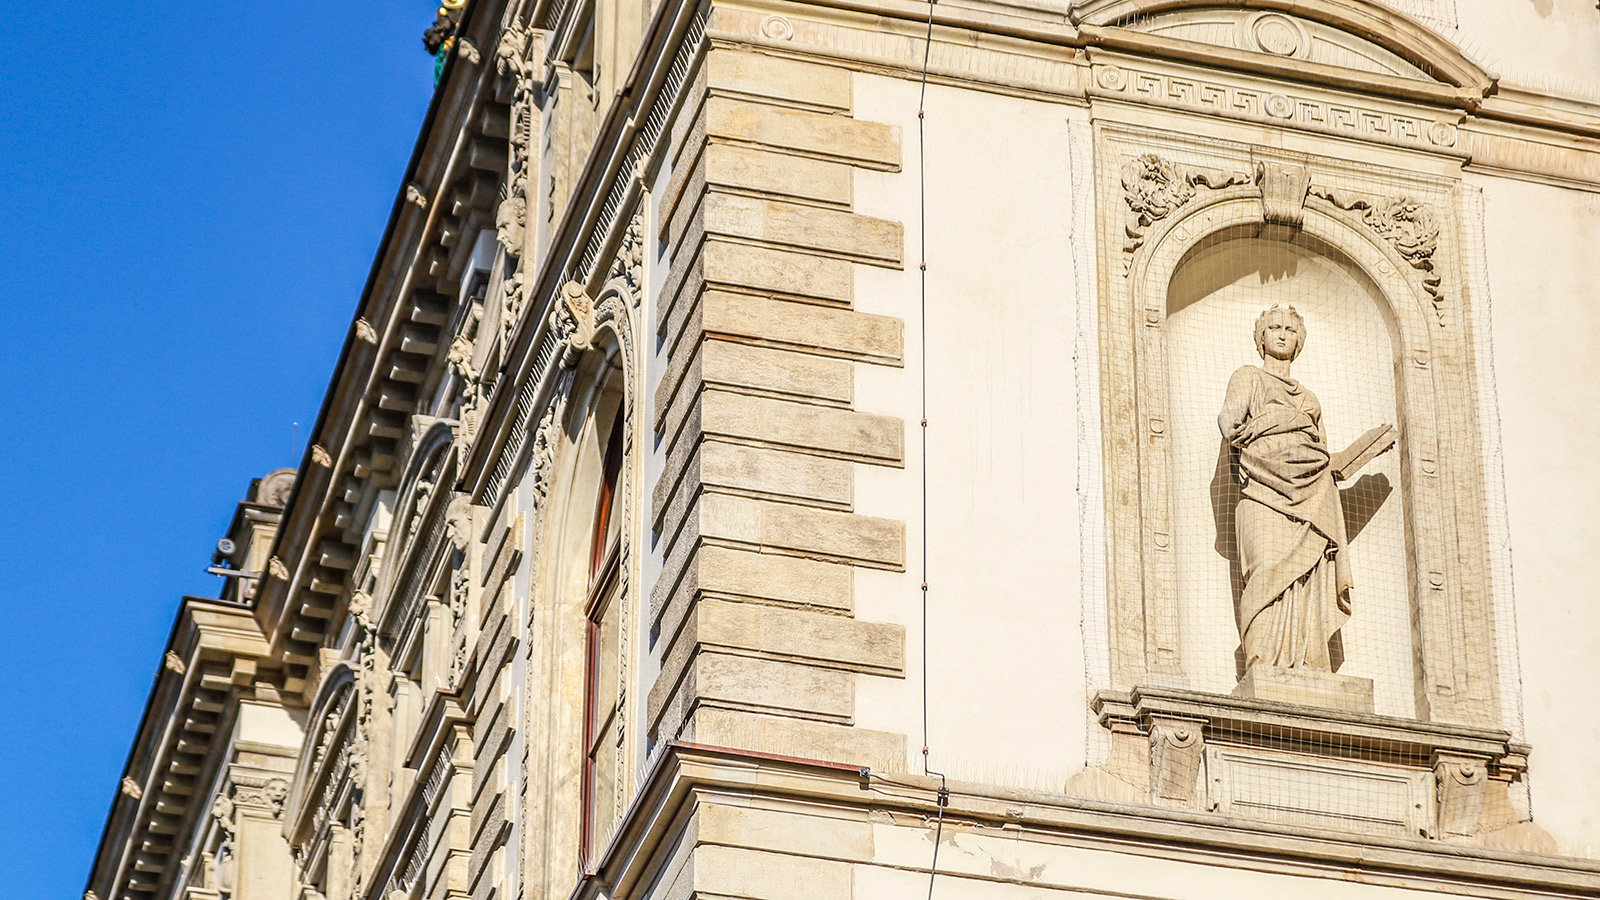 2.25-meter-high statue incorporated into the façade represents scholarship, with a book in a lecturing attitude.